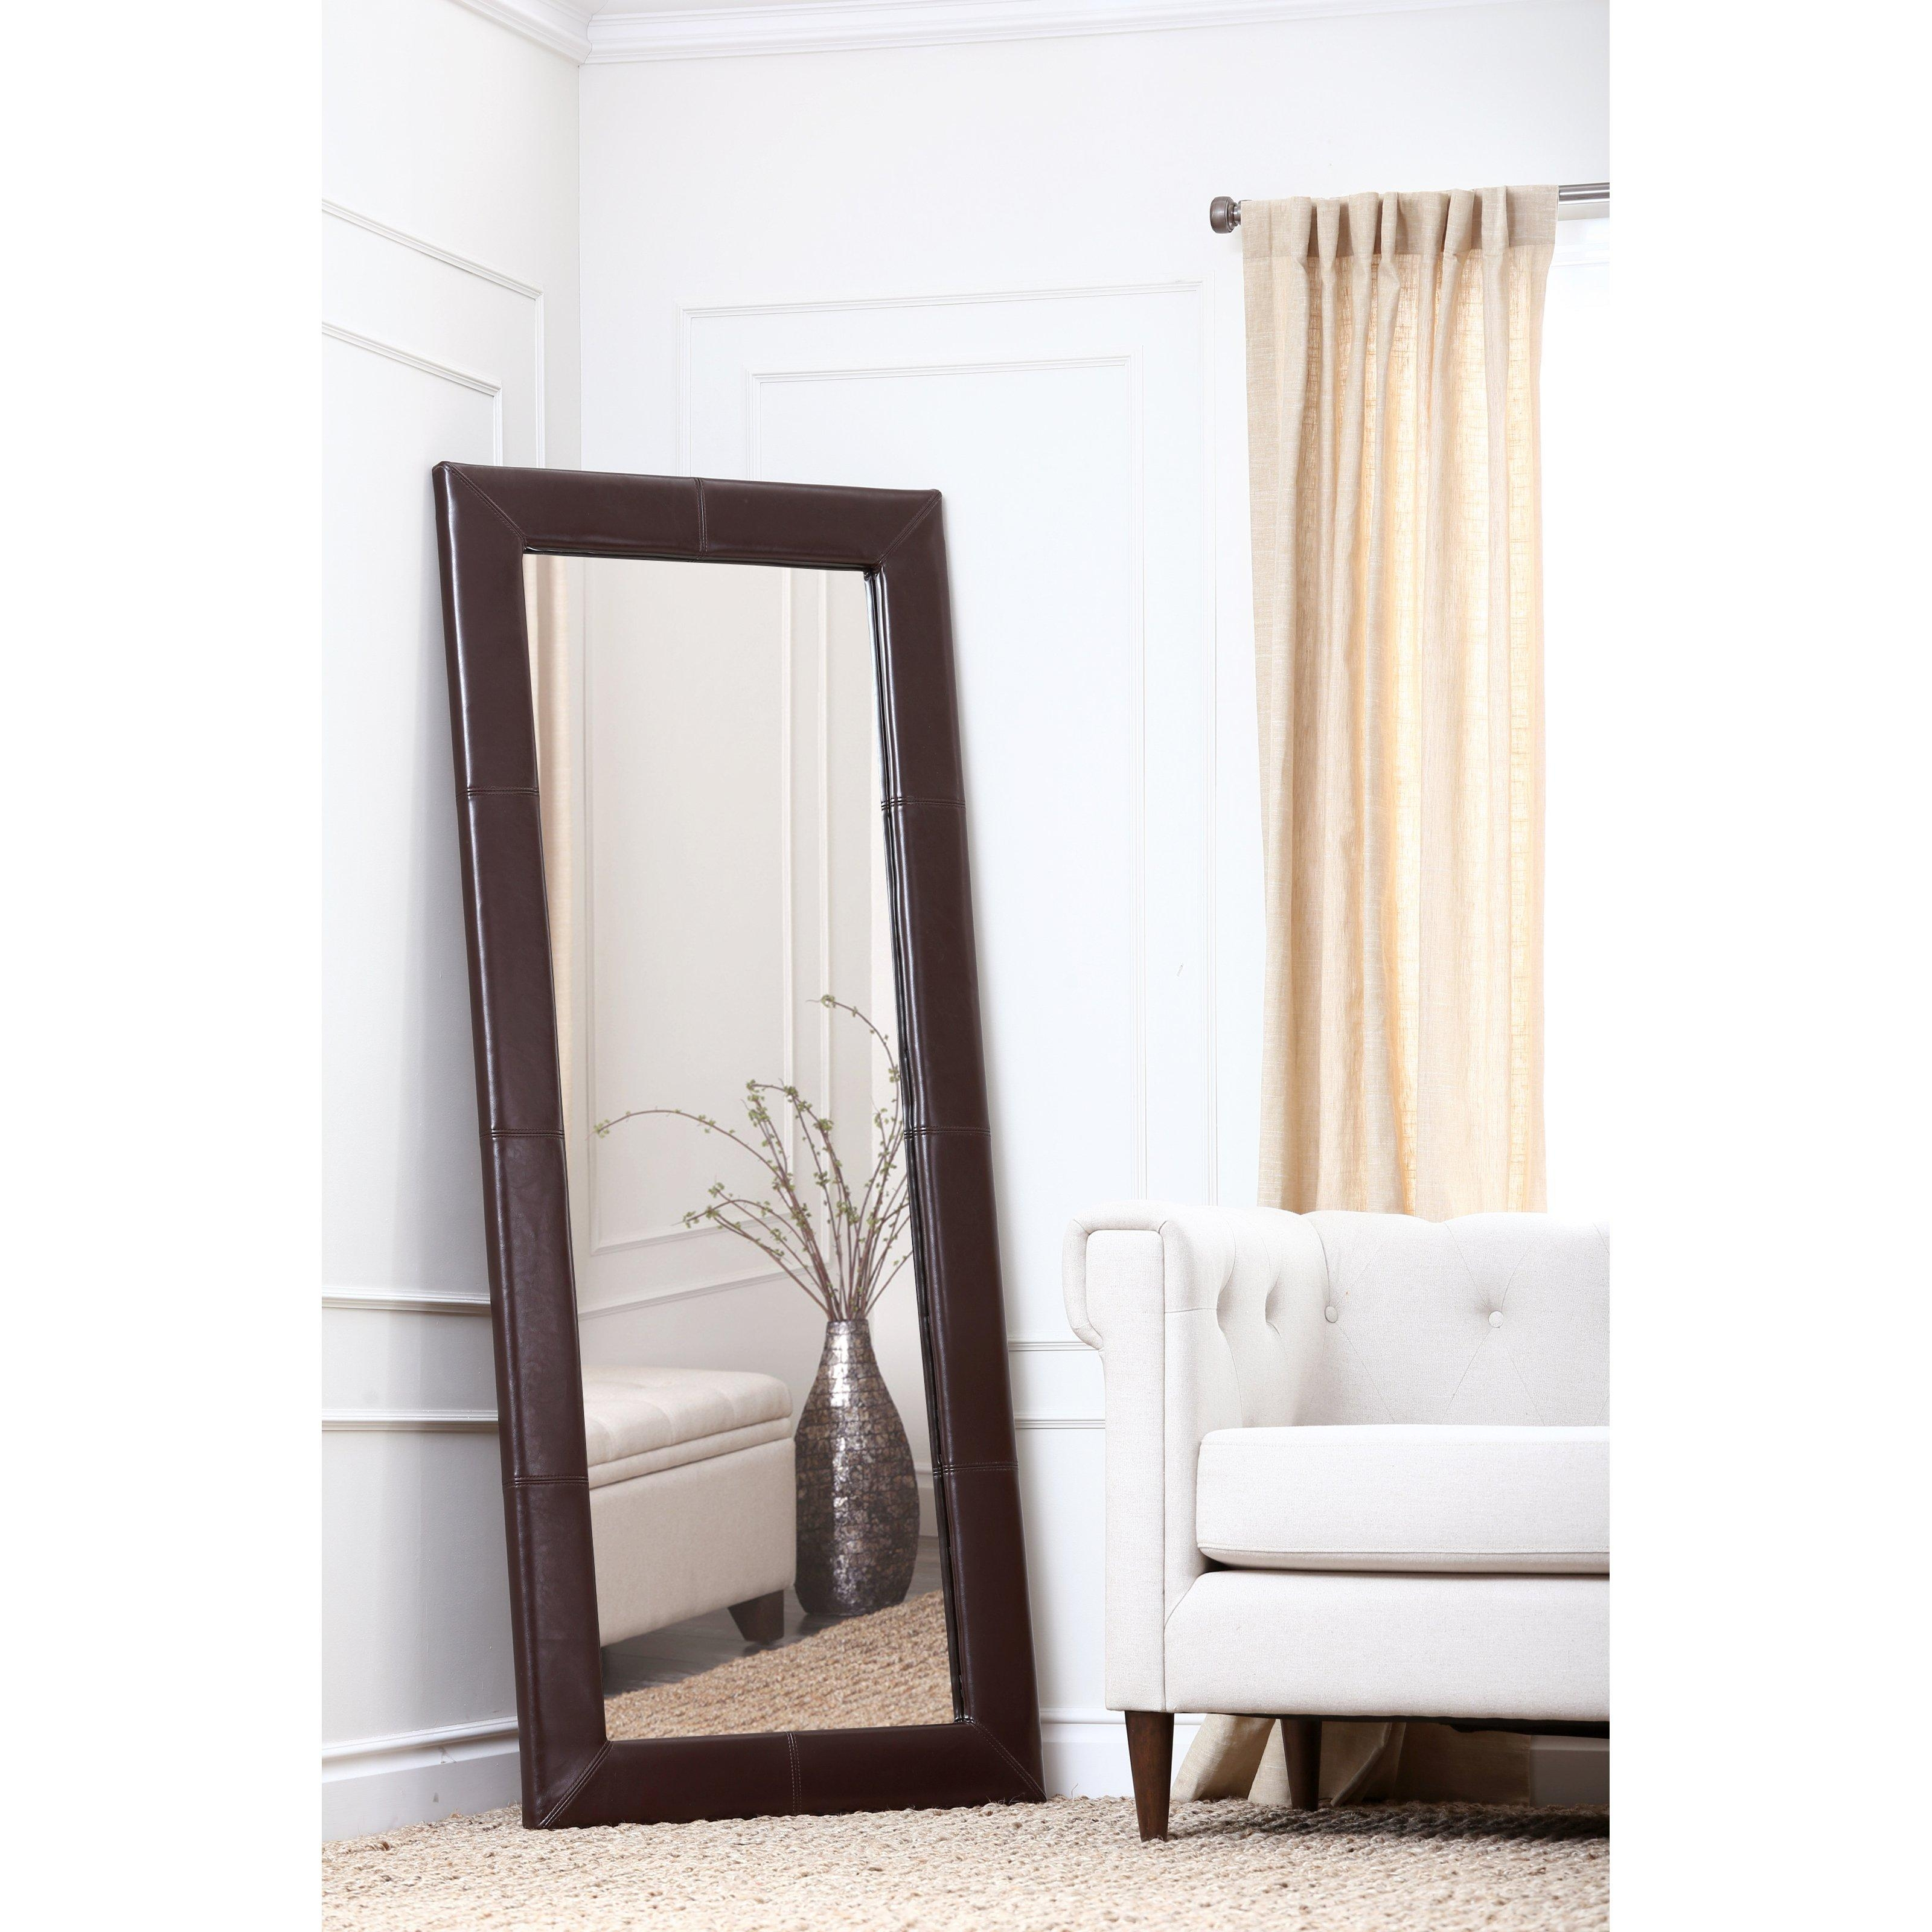 Large Floor Mirrors Ikea | Floor Decoration Intended For Large Floor Mirrors (Image 17 of 20)